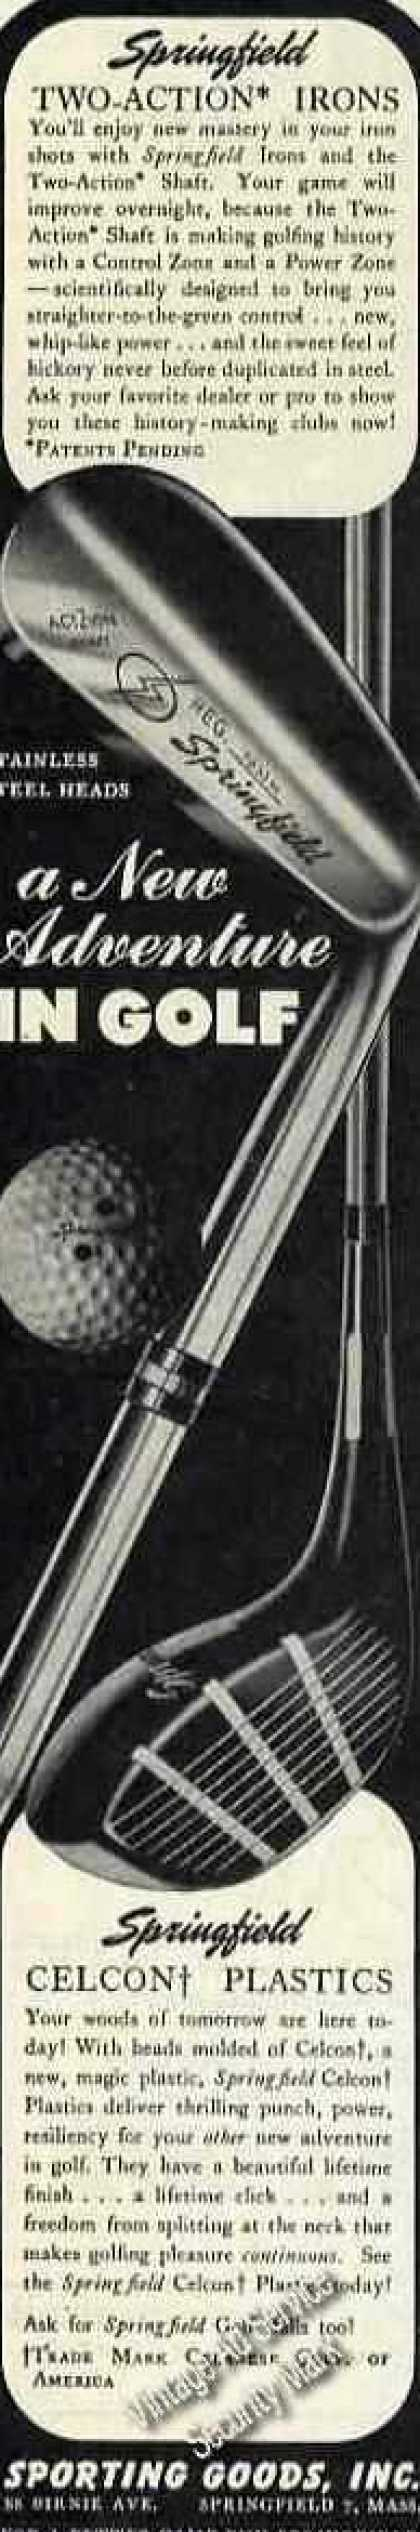 "Springfield Clubs ""A New Adventure In Golf"" (1947)"